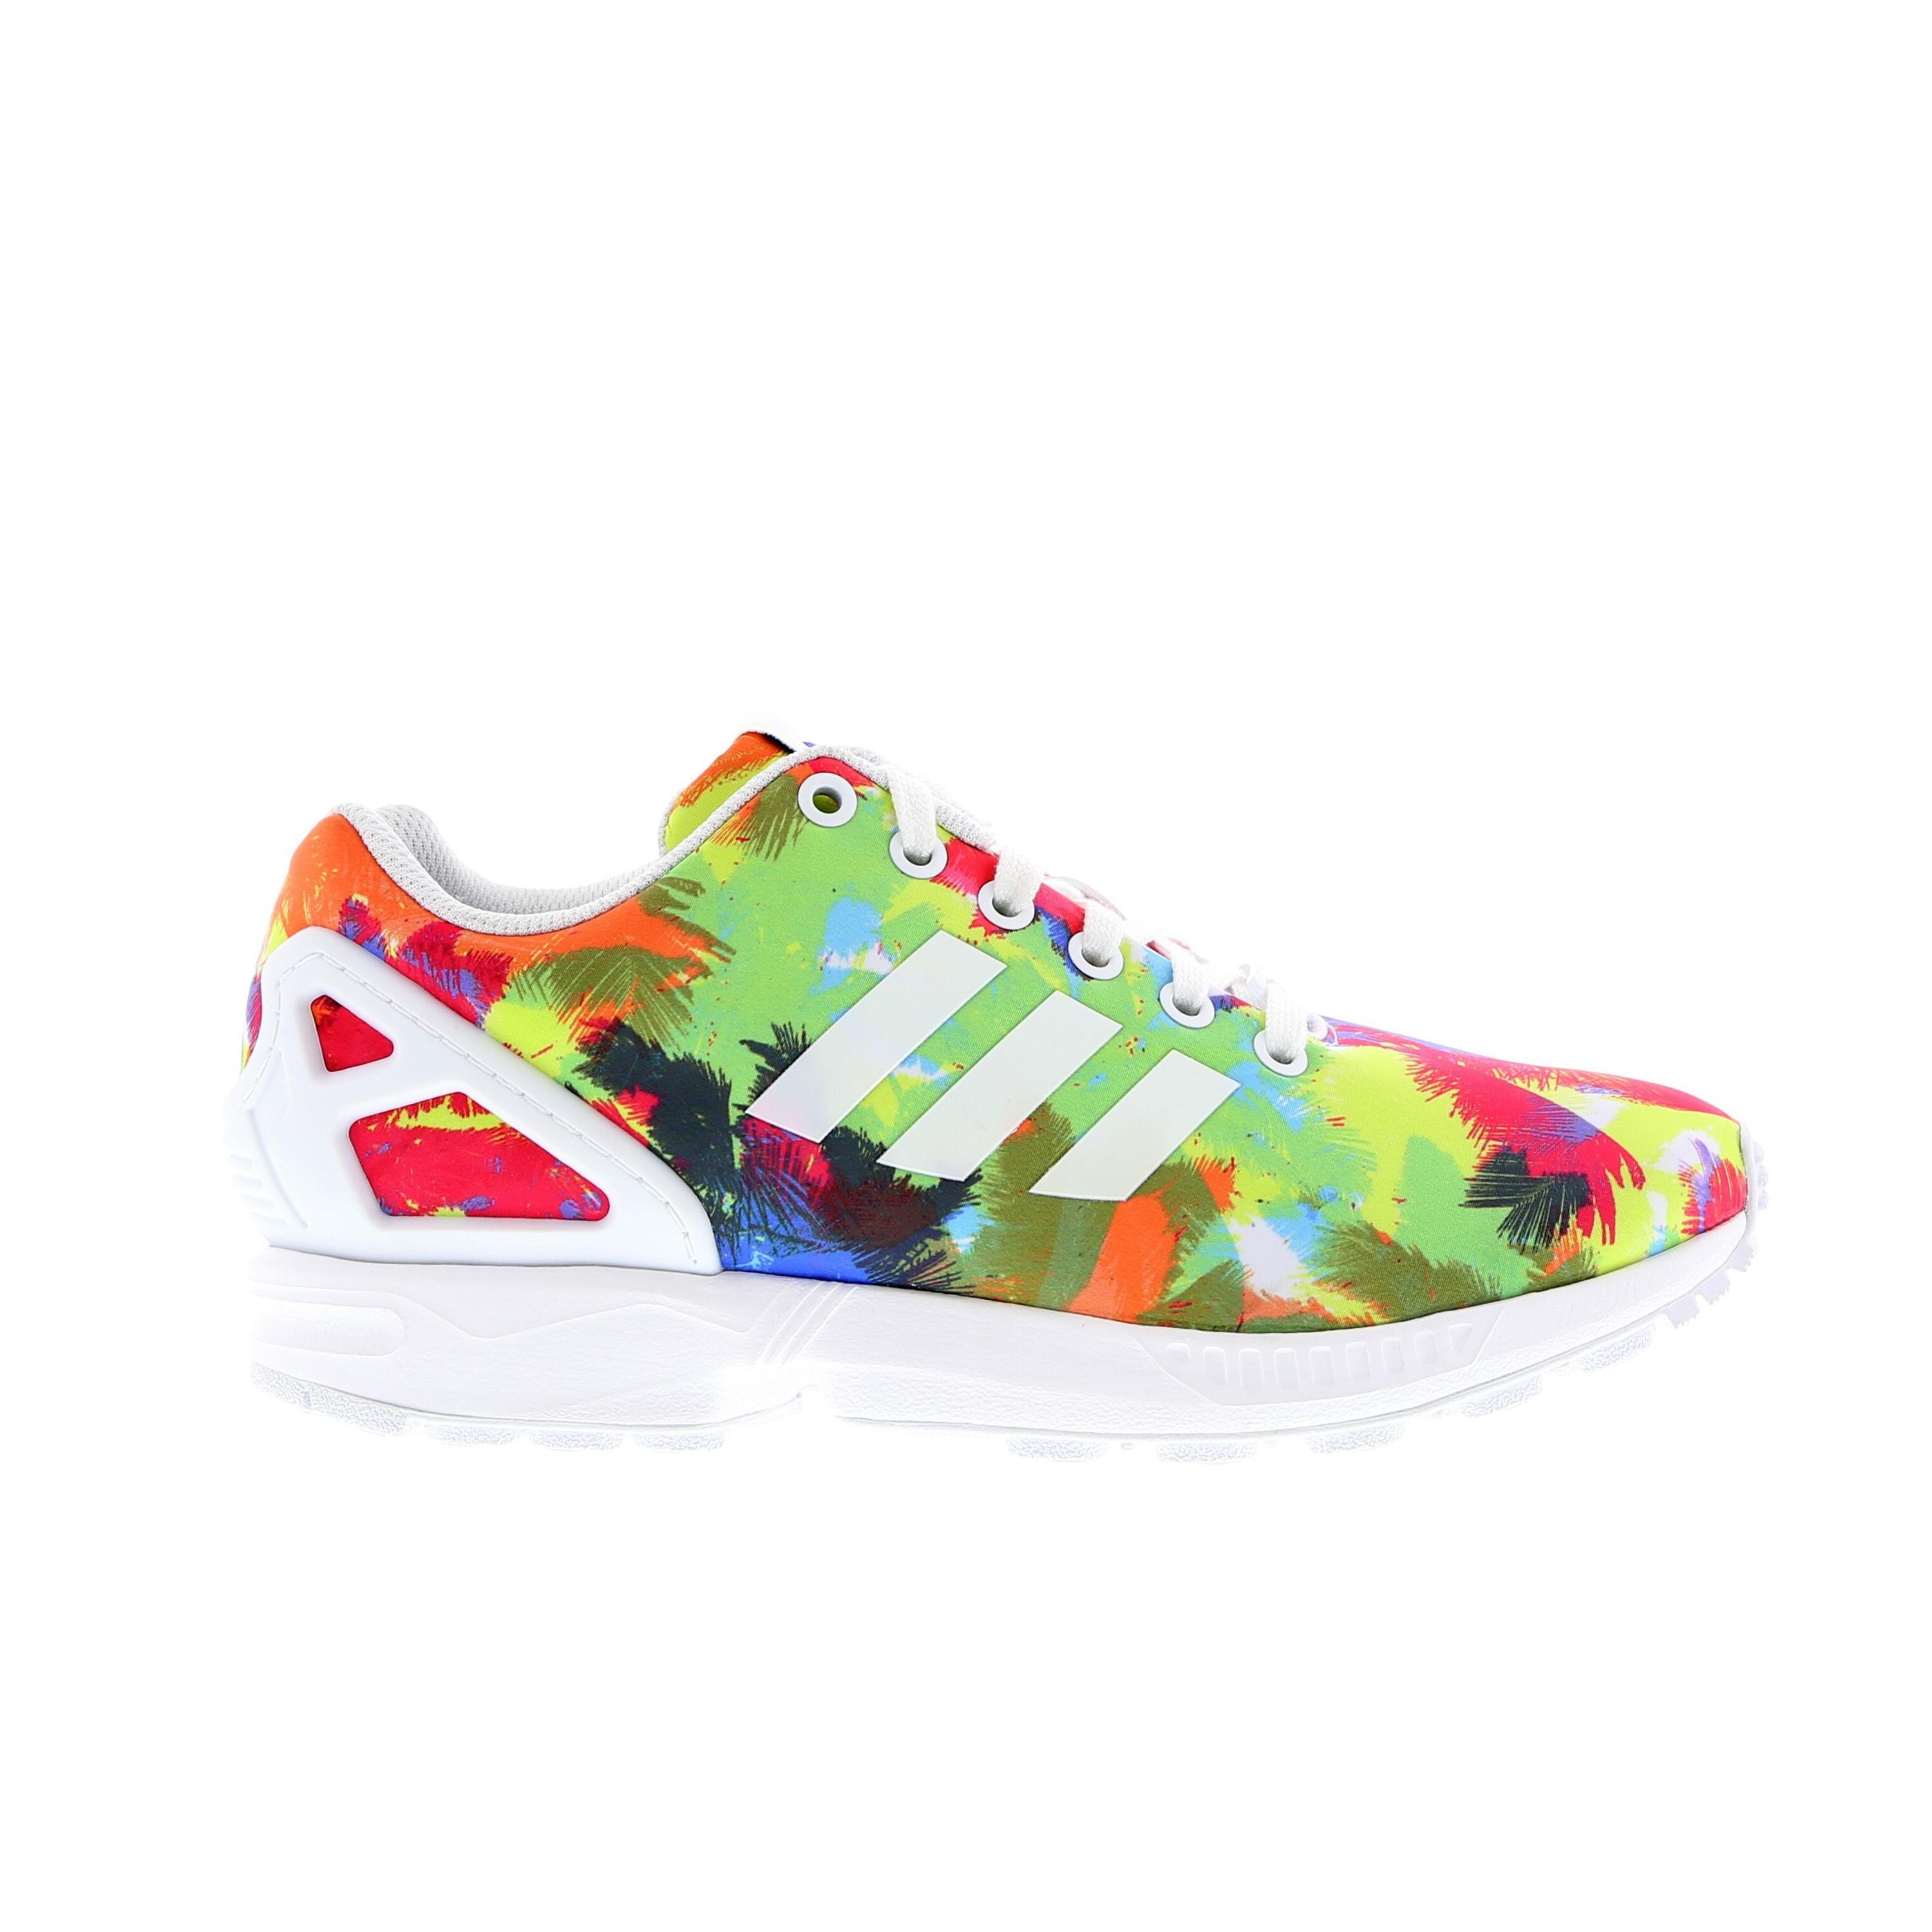 Zx Flux Floral | All Red Zx Flux | Adidas Zx Flux Blue